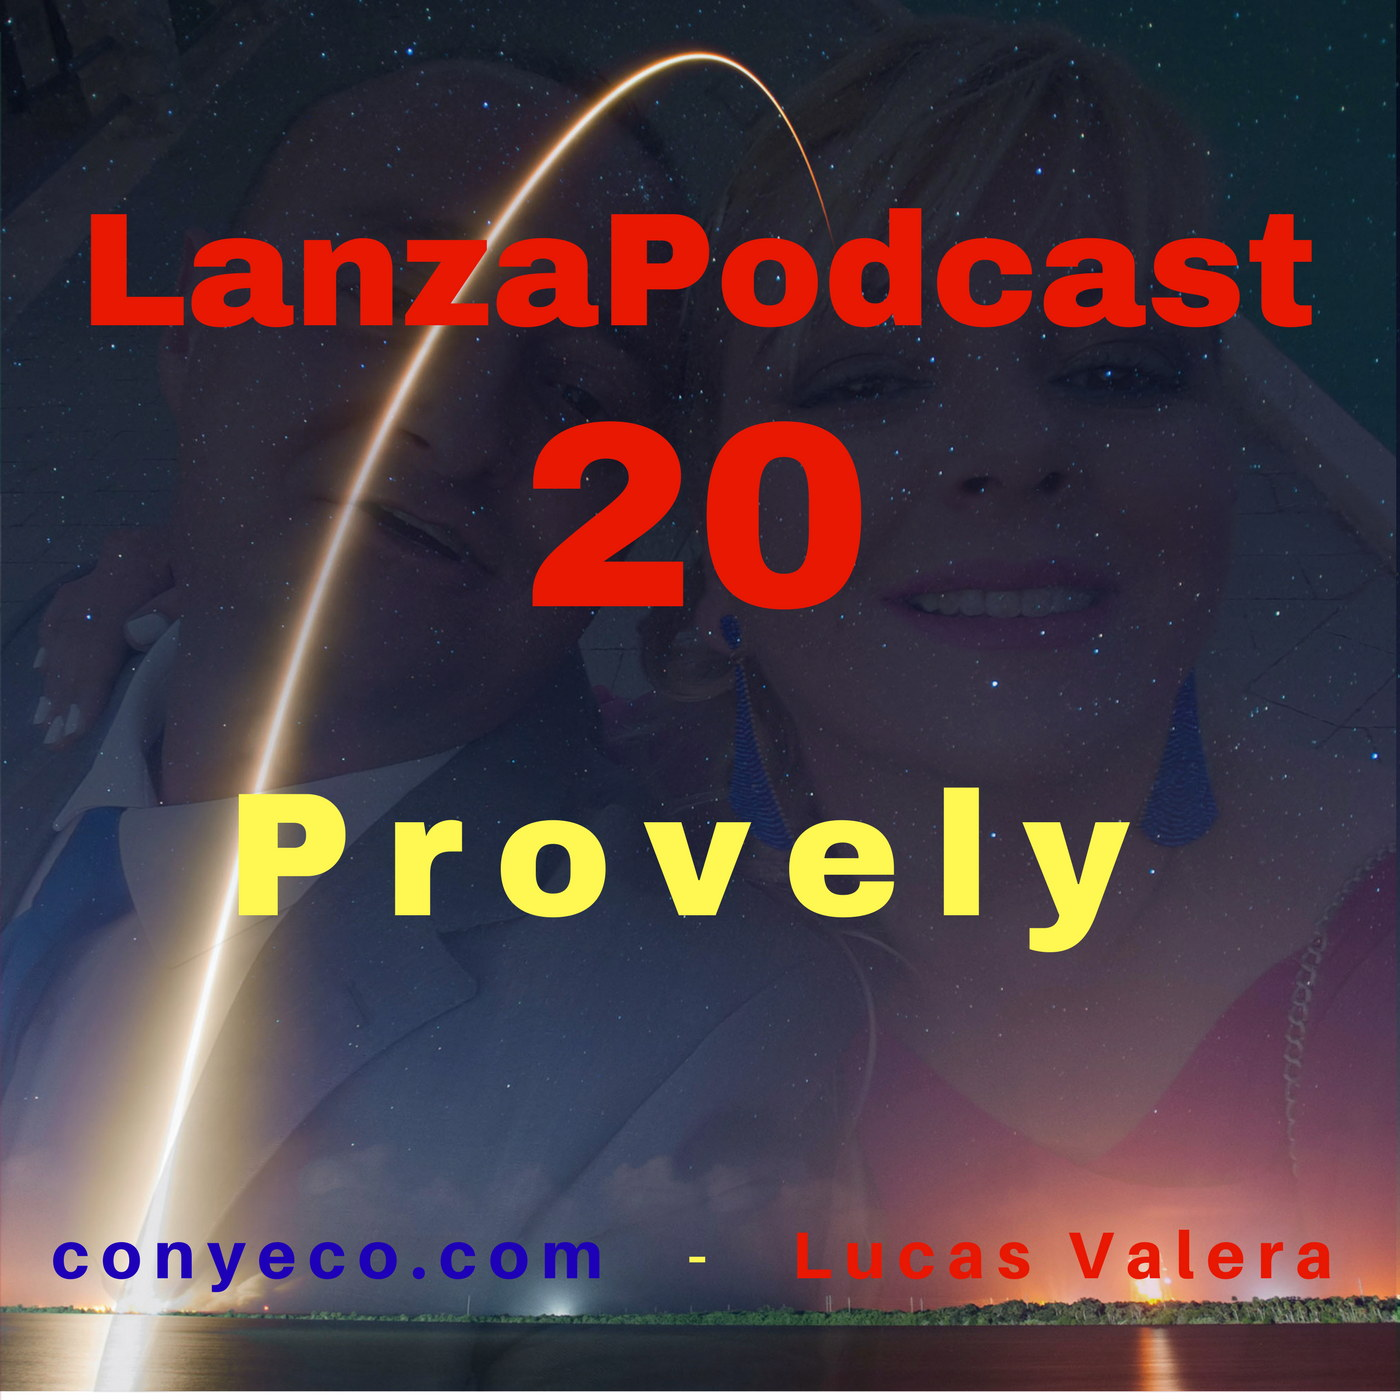 LanzaPodcast-20-Provely-conyeco.com-Lucas-Valera